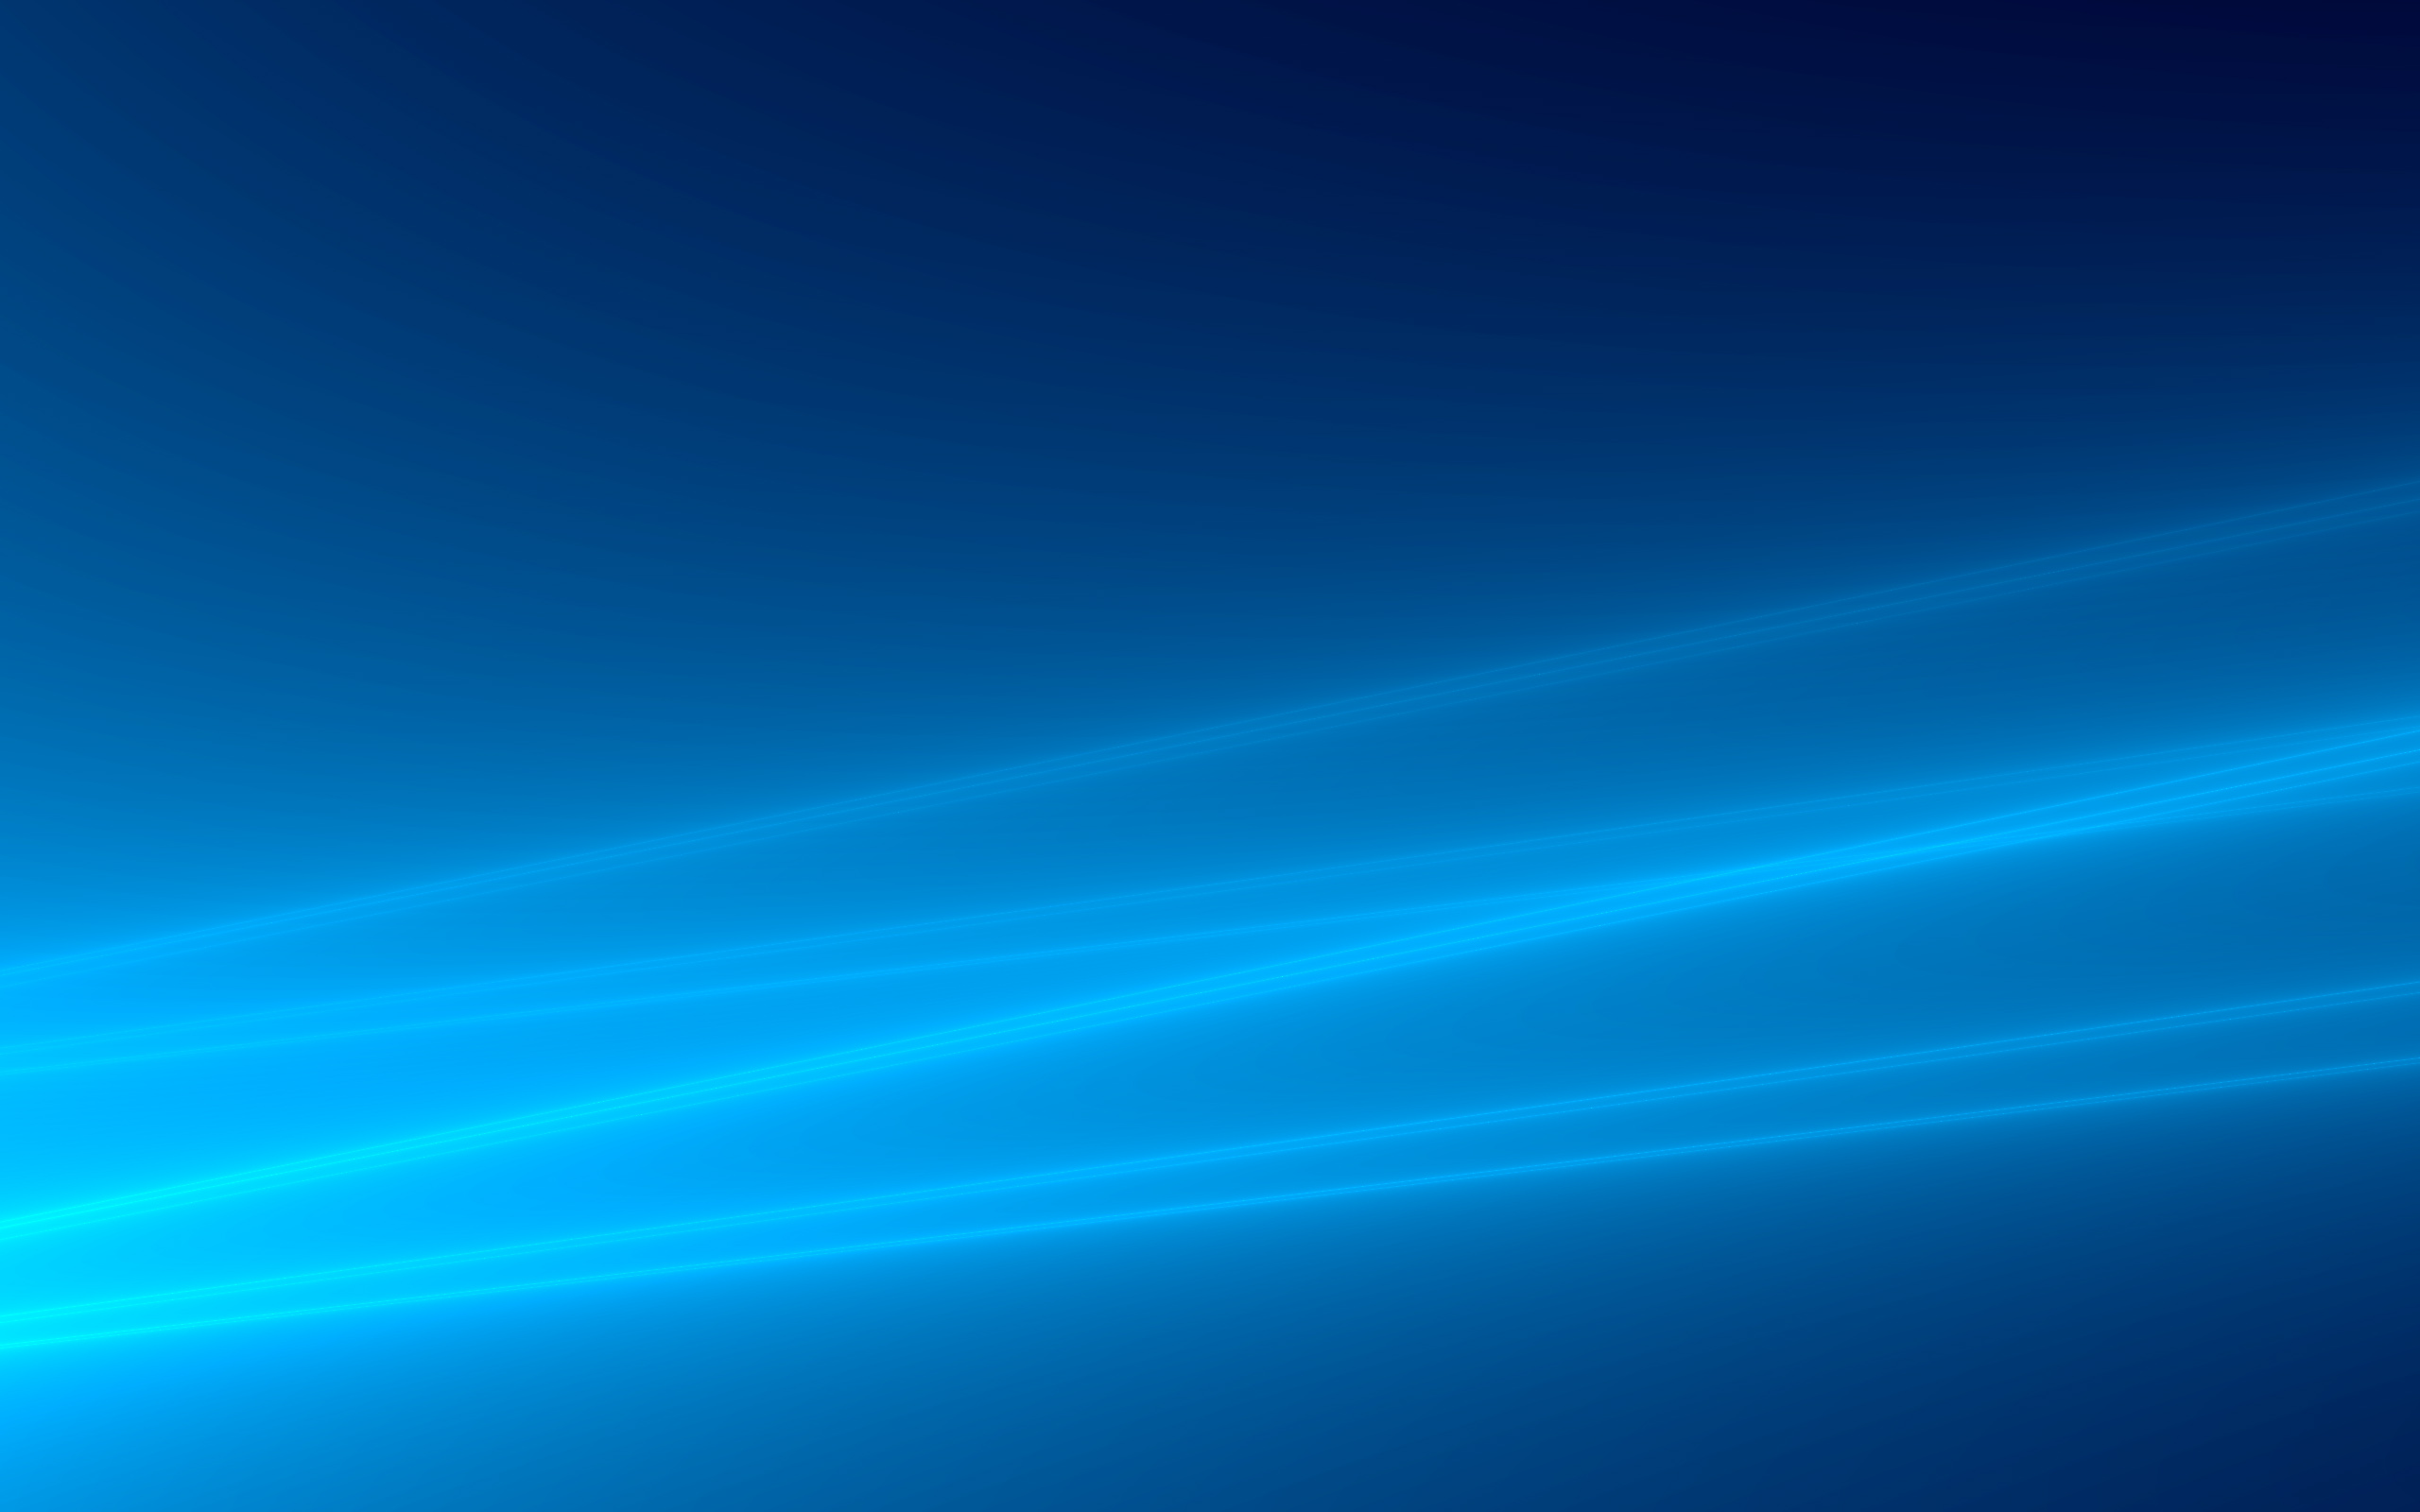 69 4K Blue Wallpaper Backgrounds That Will Give Your 2560x1600